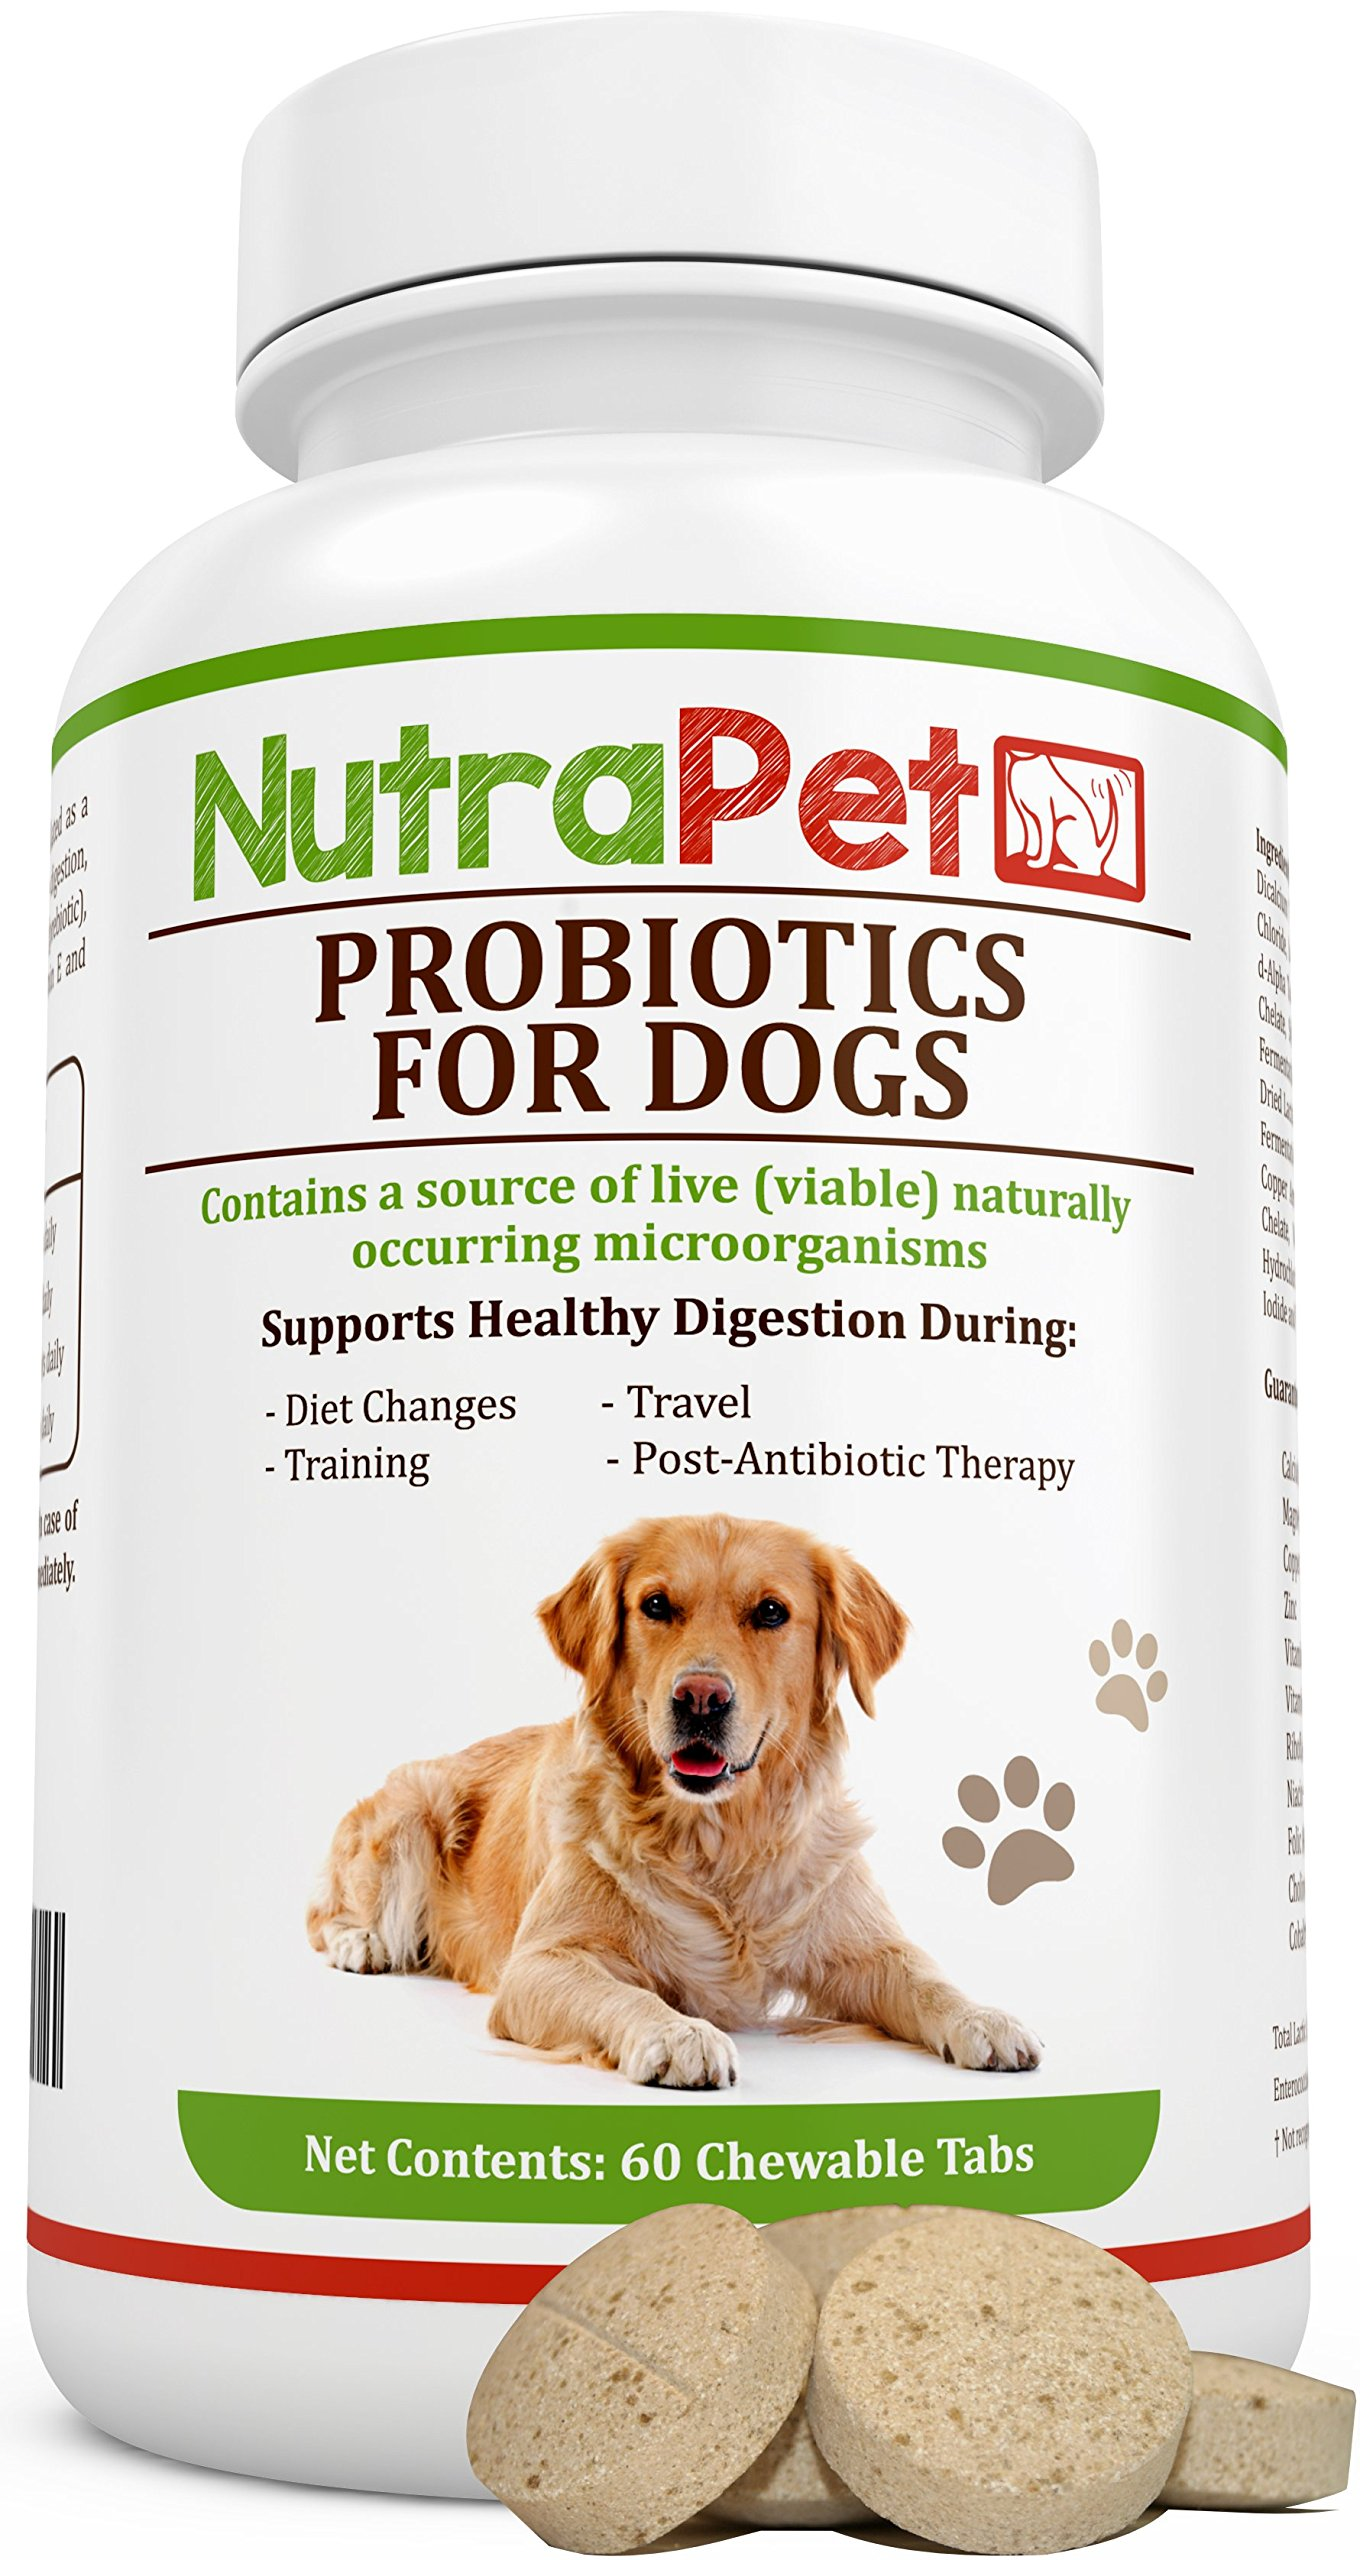 NutraPet Probiotics for Dogs Chewable, Digestive Health Supplement with Added Prebiotic, Vitamins and Minerals for an Active Lifestyle, 60 Tabs by NutraPet